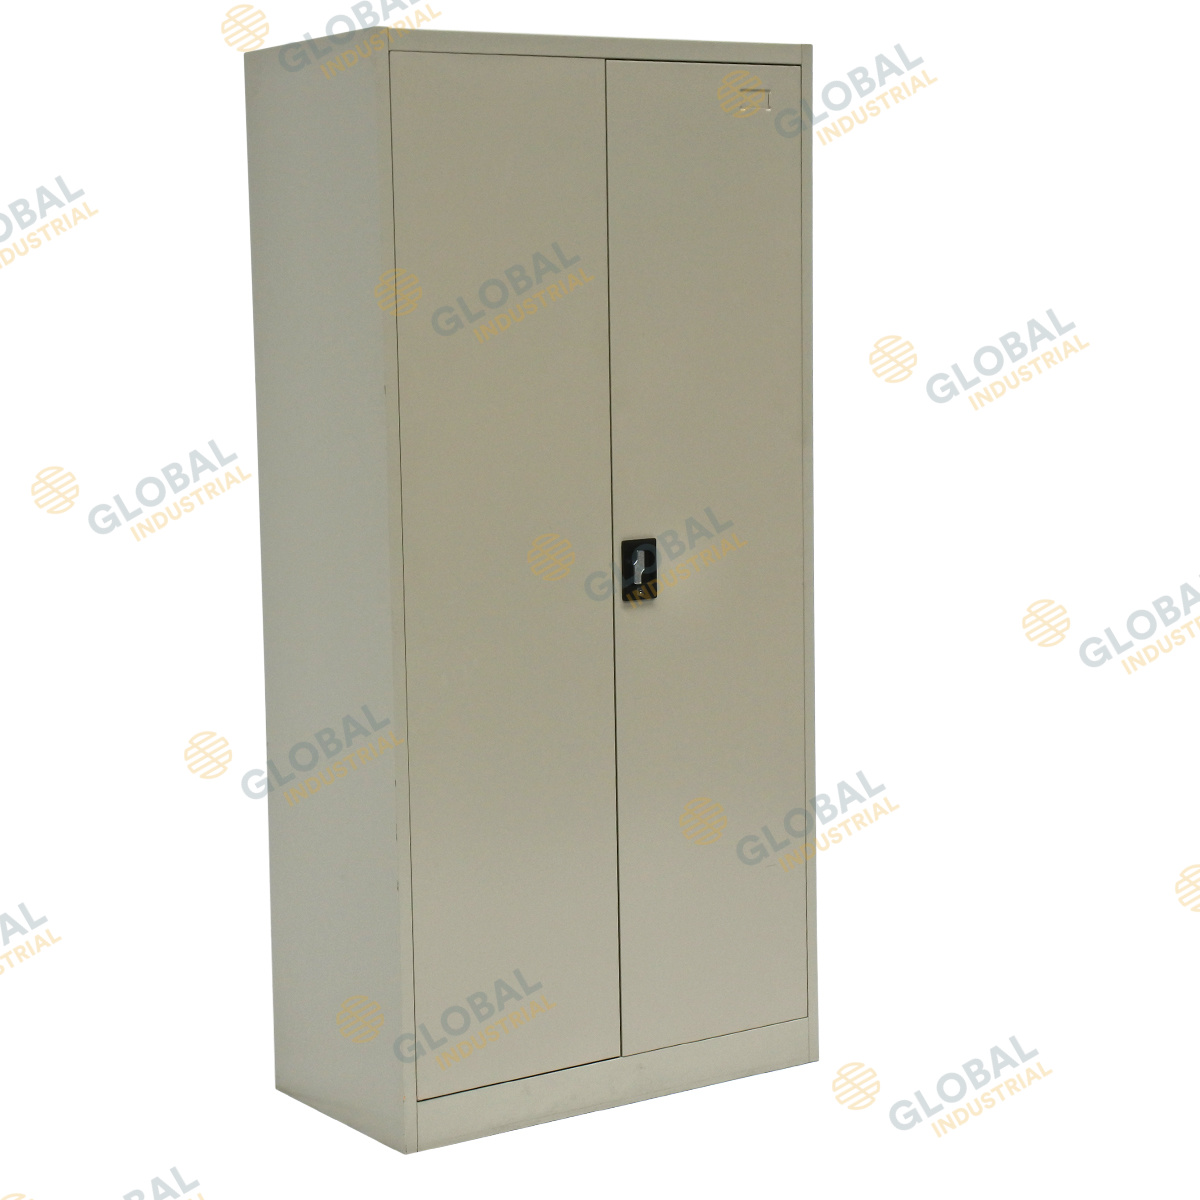 MK2 Two Door Cabinet Lockable Storage Cabinet  Global